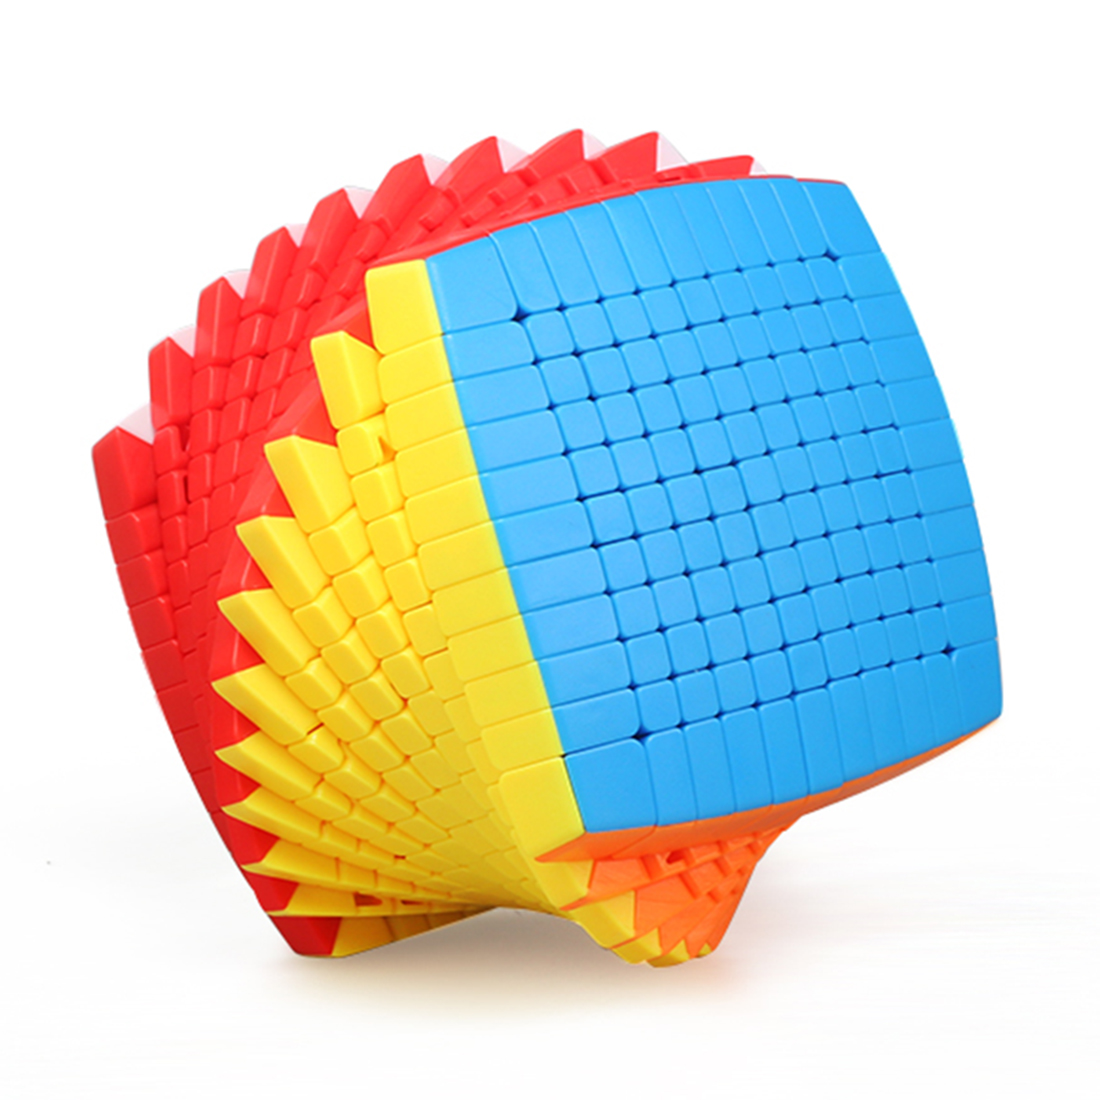 Shengshou 10X10 / 11X11/ 12X12 /13X13 / 14X14 /15X15 Magic Cube Professional Speed Cubes Adults Kids Christmas Gifts 2019